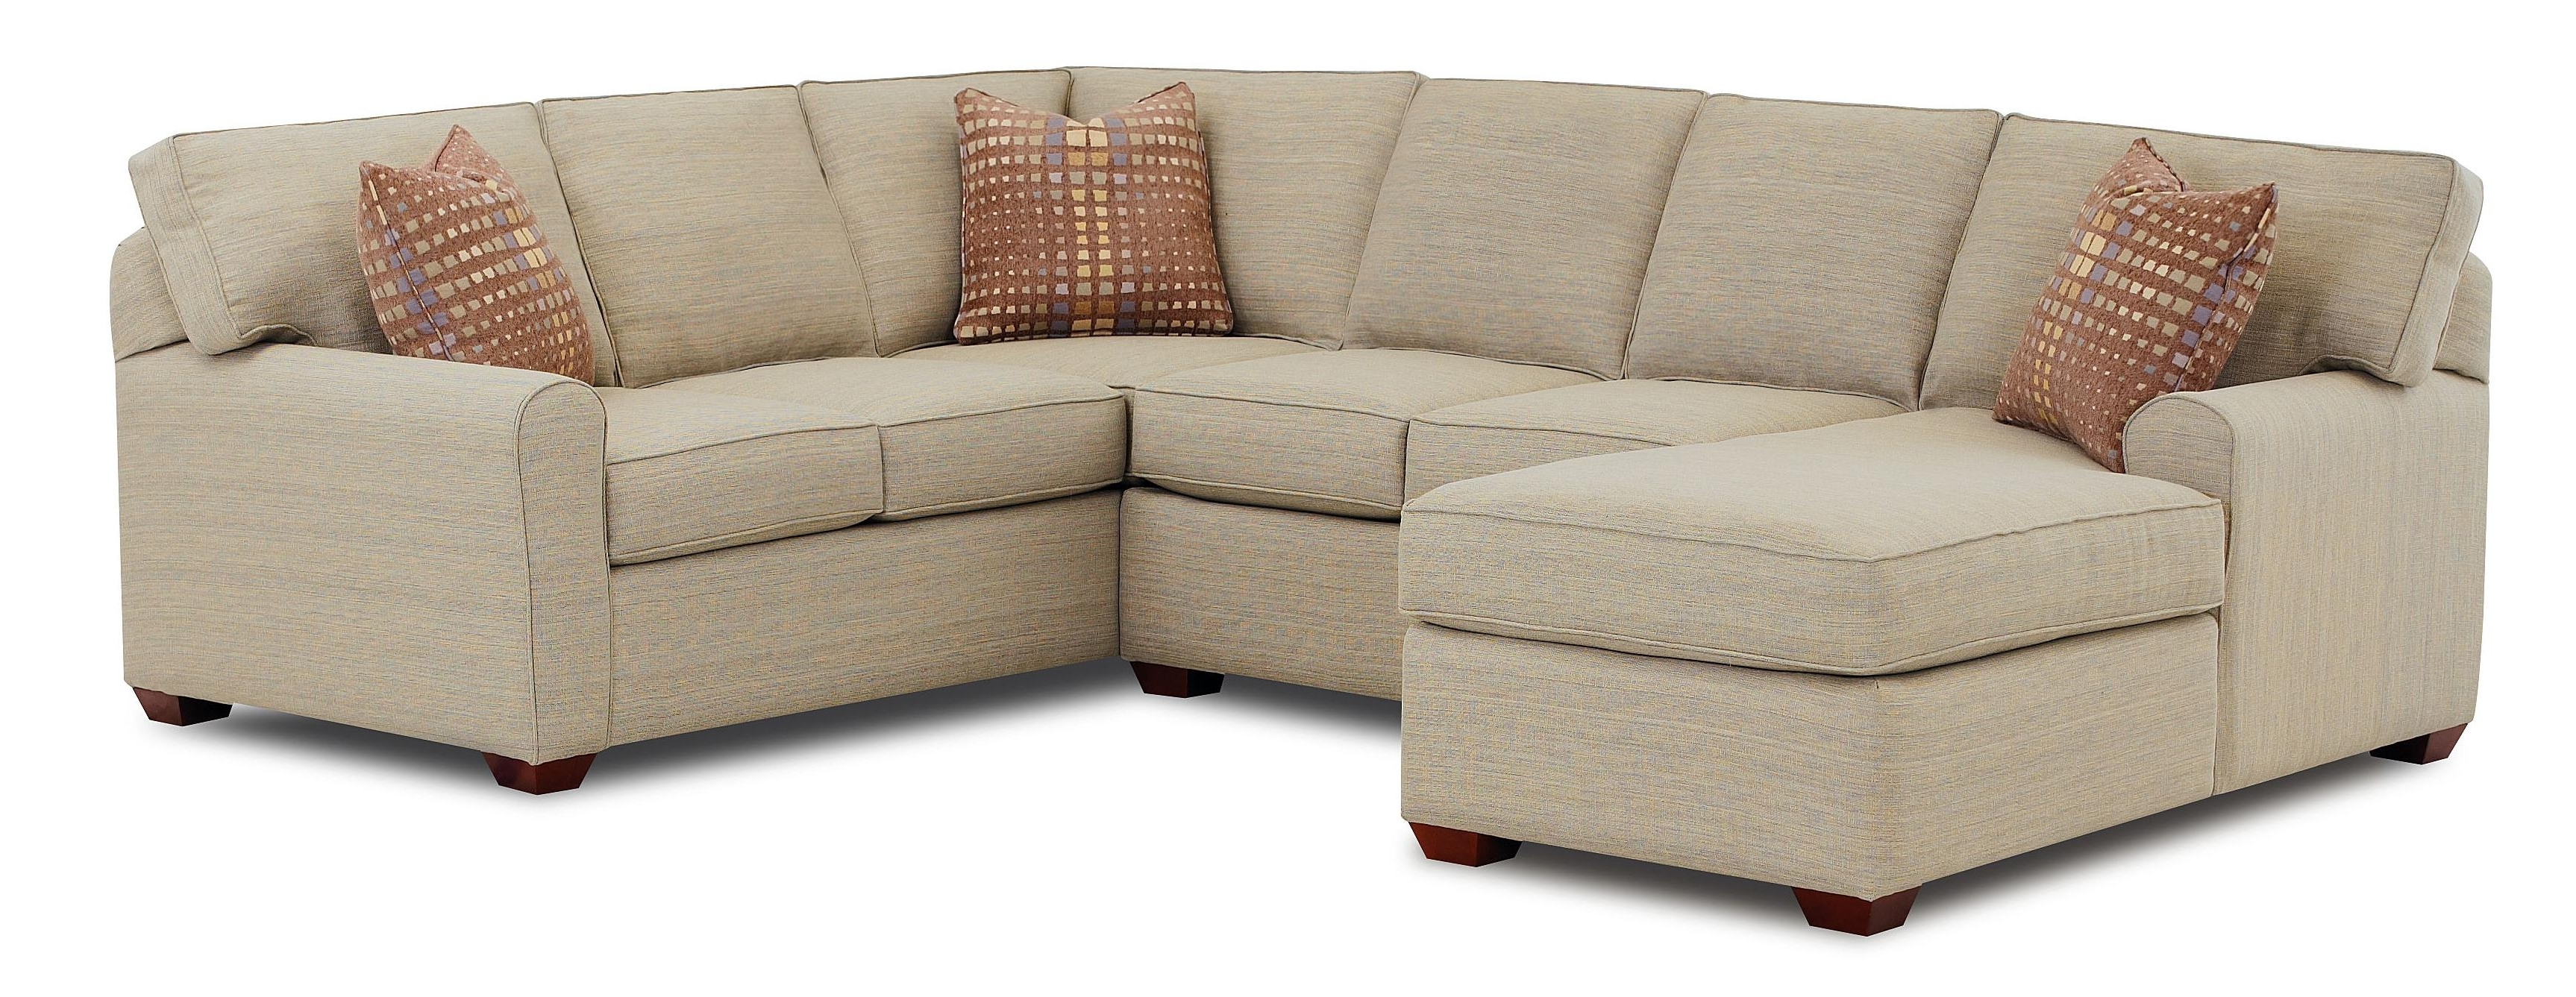 Well Known Chaise Lounge Couches With Regard To Inspirational Sectional Sofa With Chaise Lounge 66 Sofa Design (View 13 of 15)